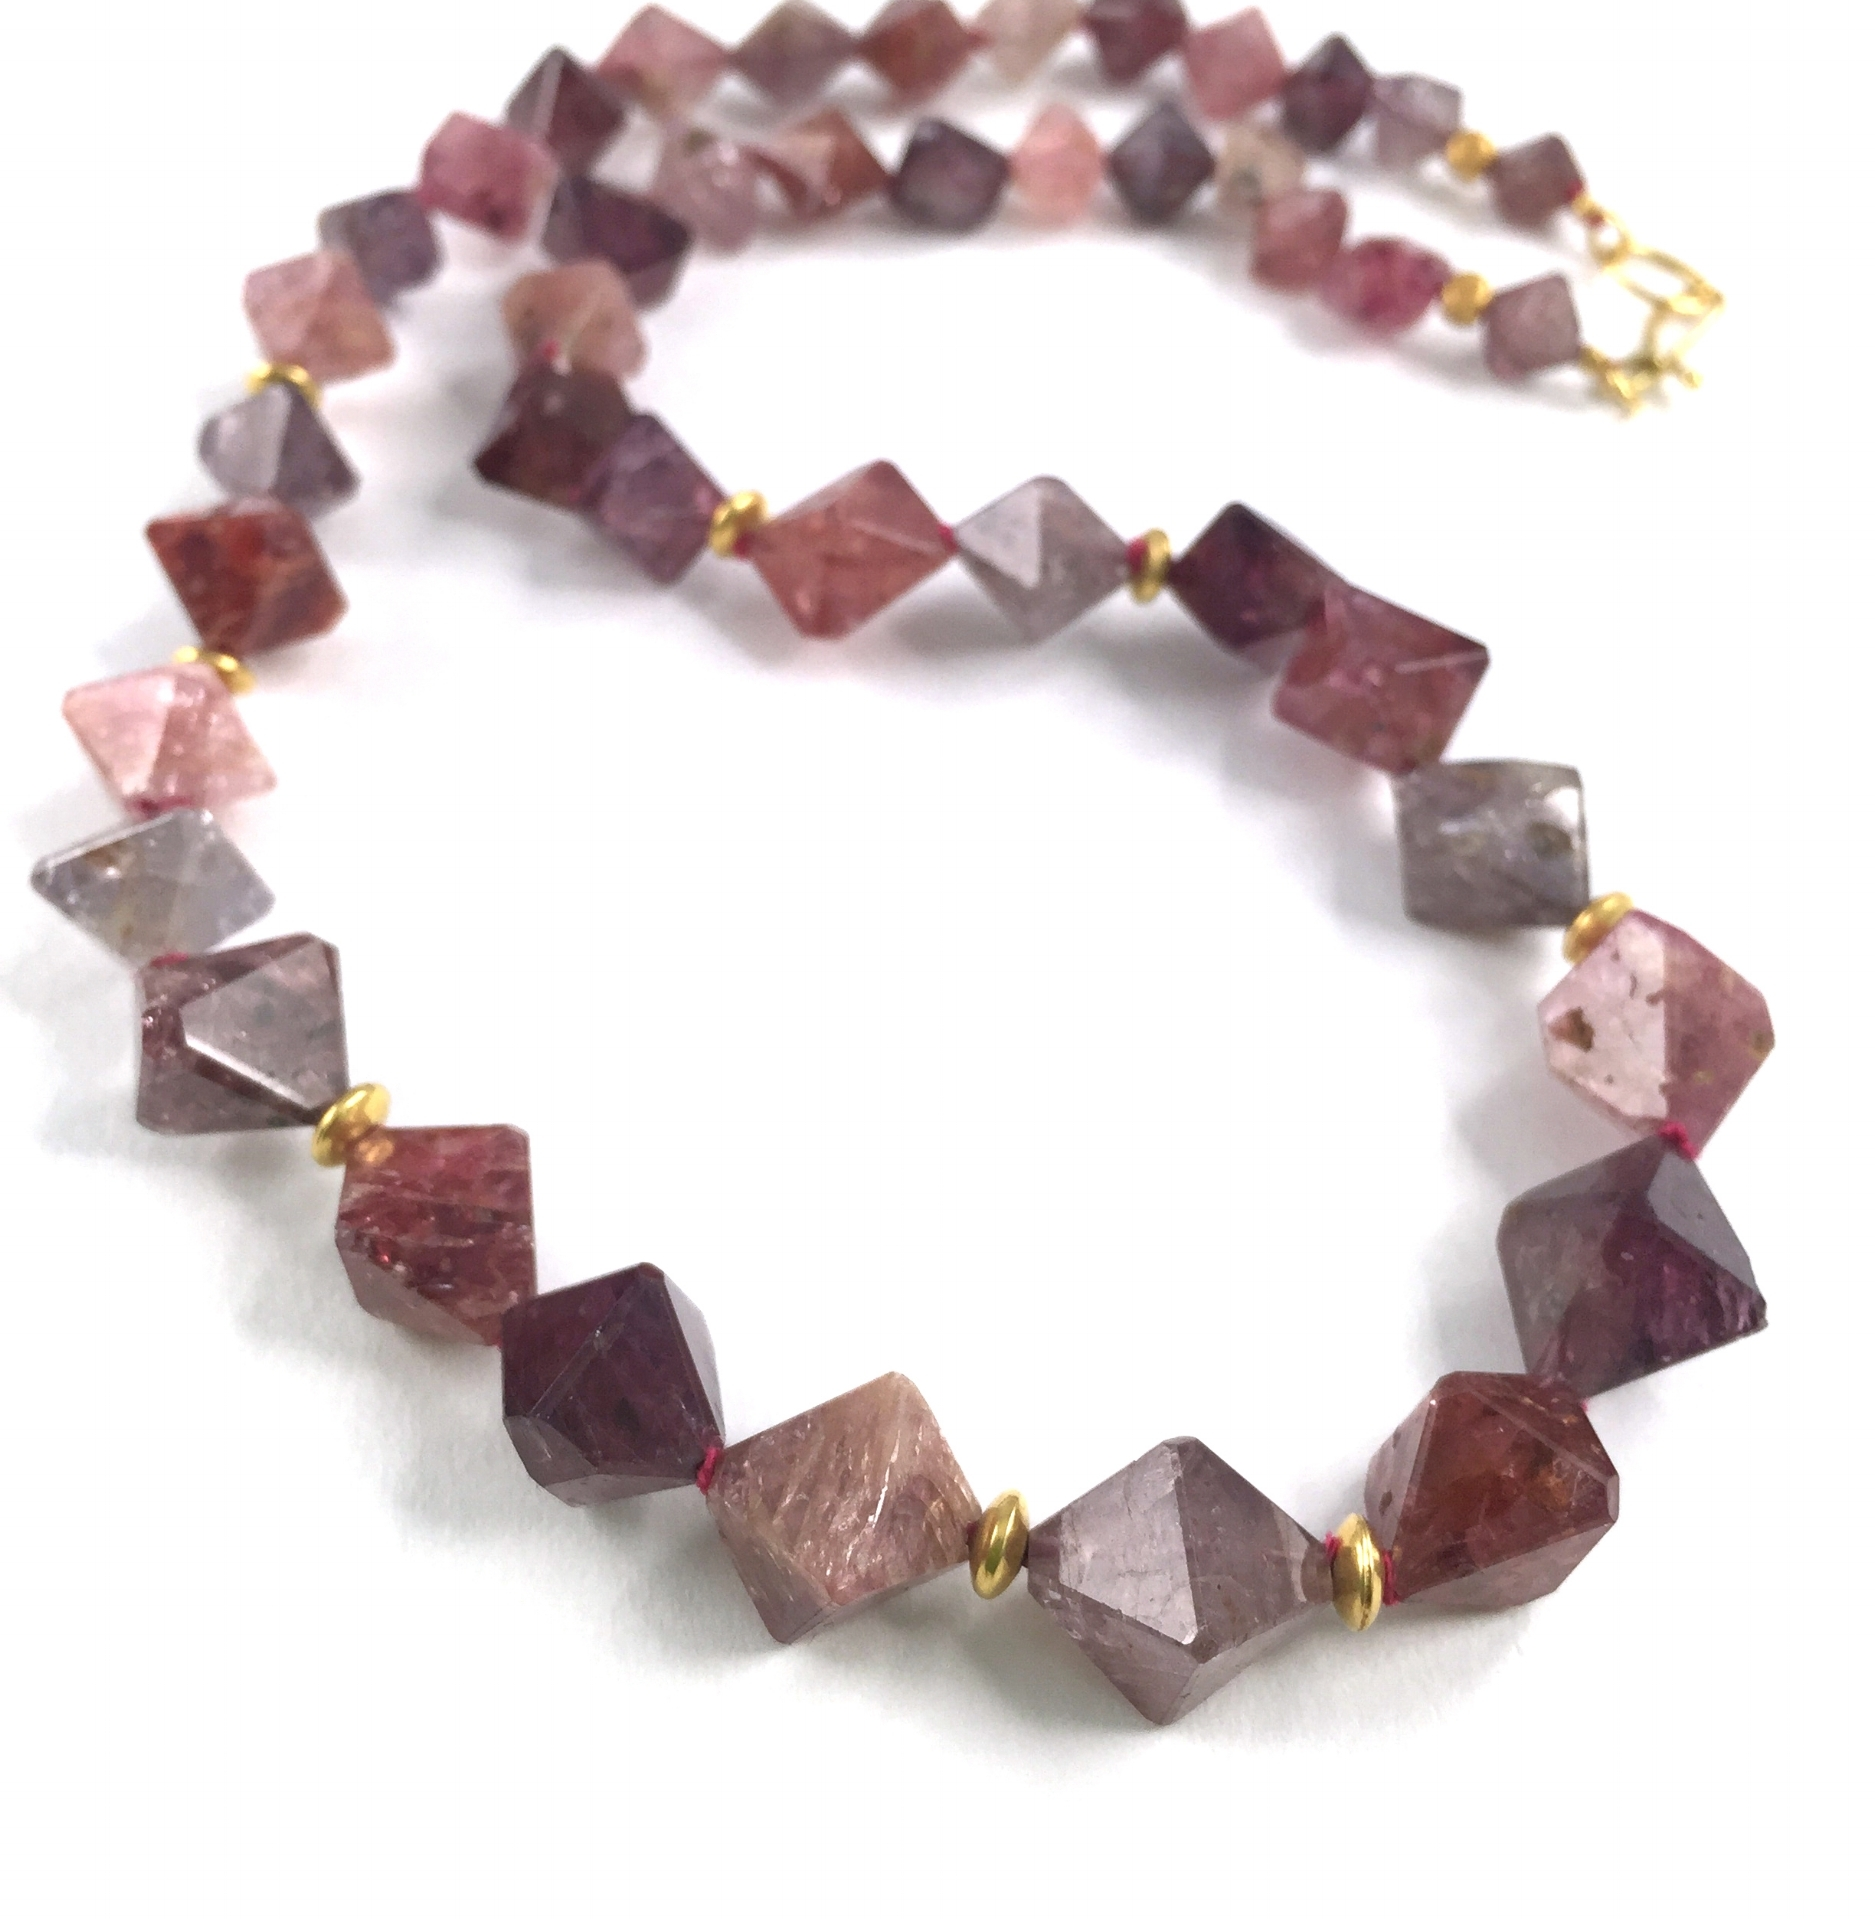 strand of natural spinel with indian gold beads necklace and closure in 18K.